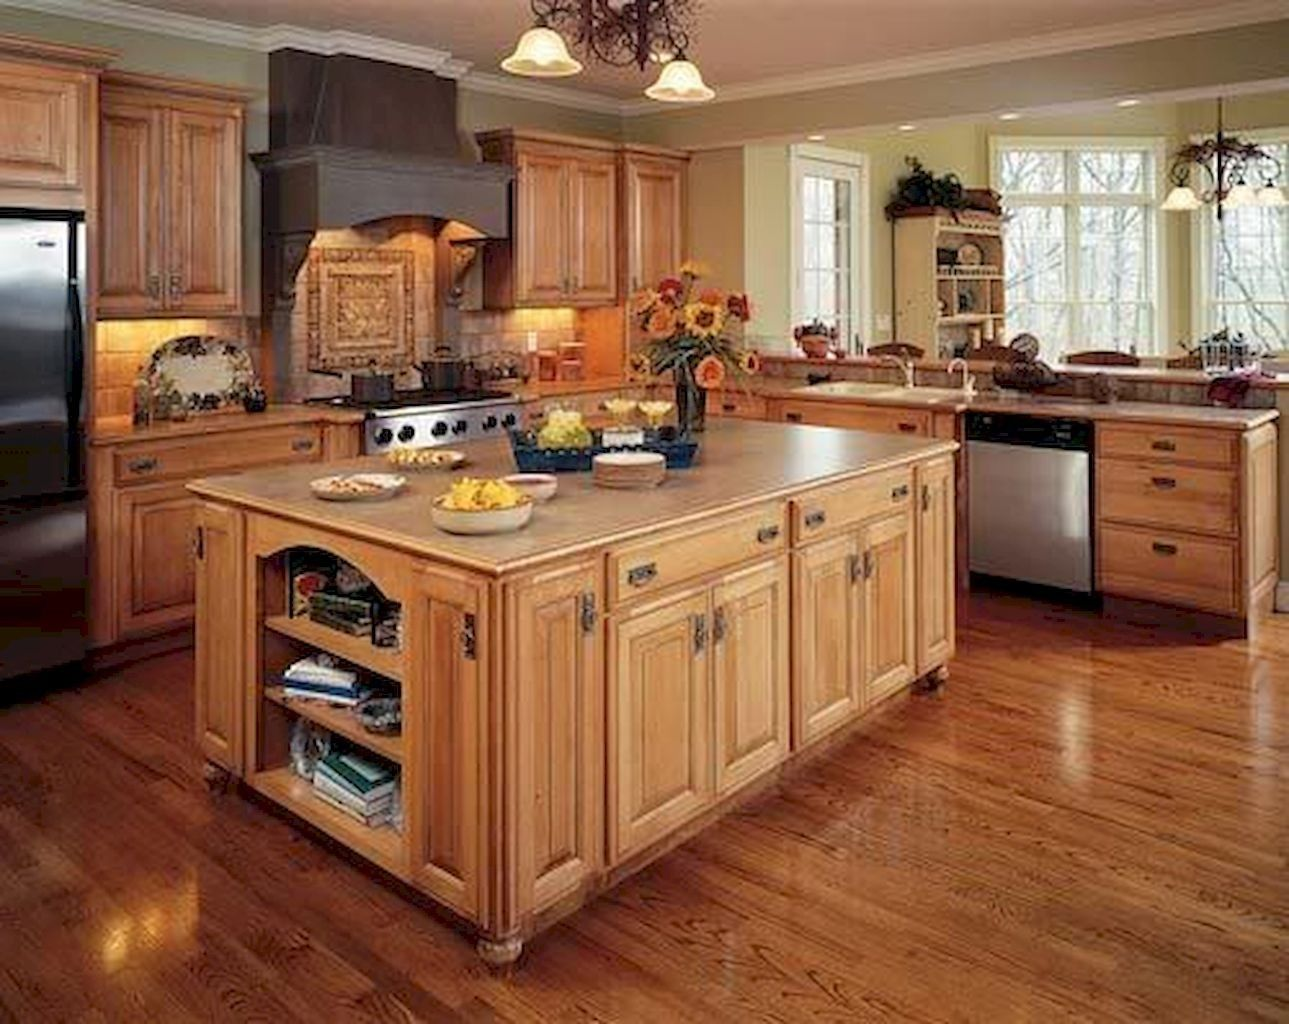 125 Stuning Kitchen Cabinets Design Ideas And Remodel To Inspire Your Kitchen Kitch Maple Kitchen Cabinets Rustic Kitchen Cabinets Beautiful Kitchen Cabinets